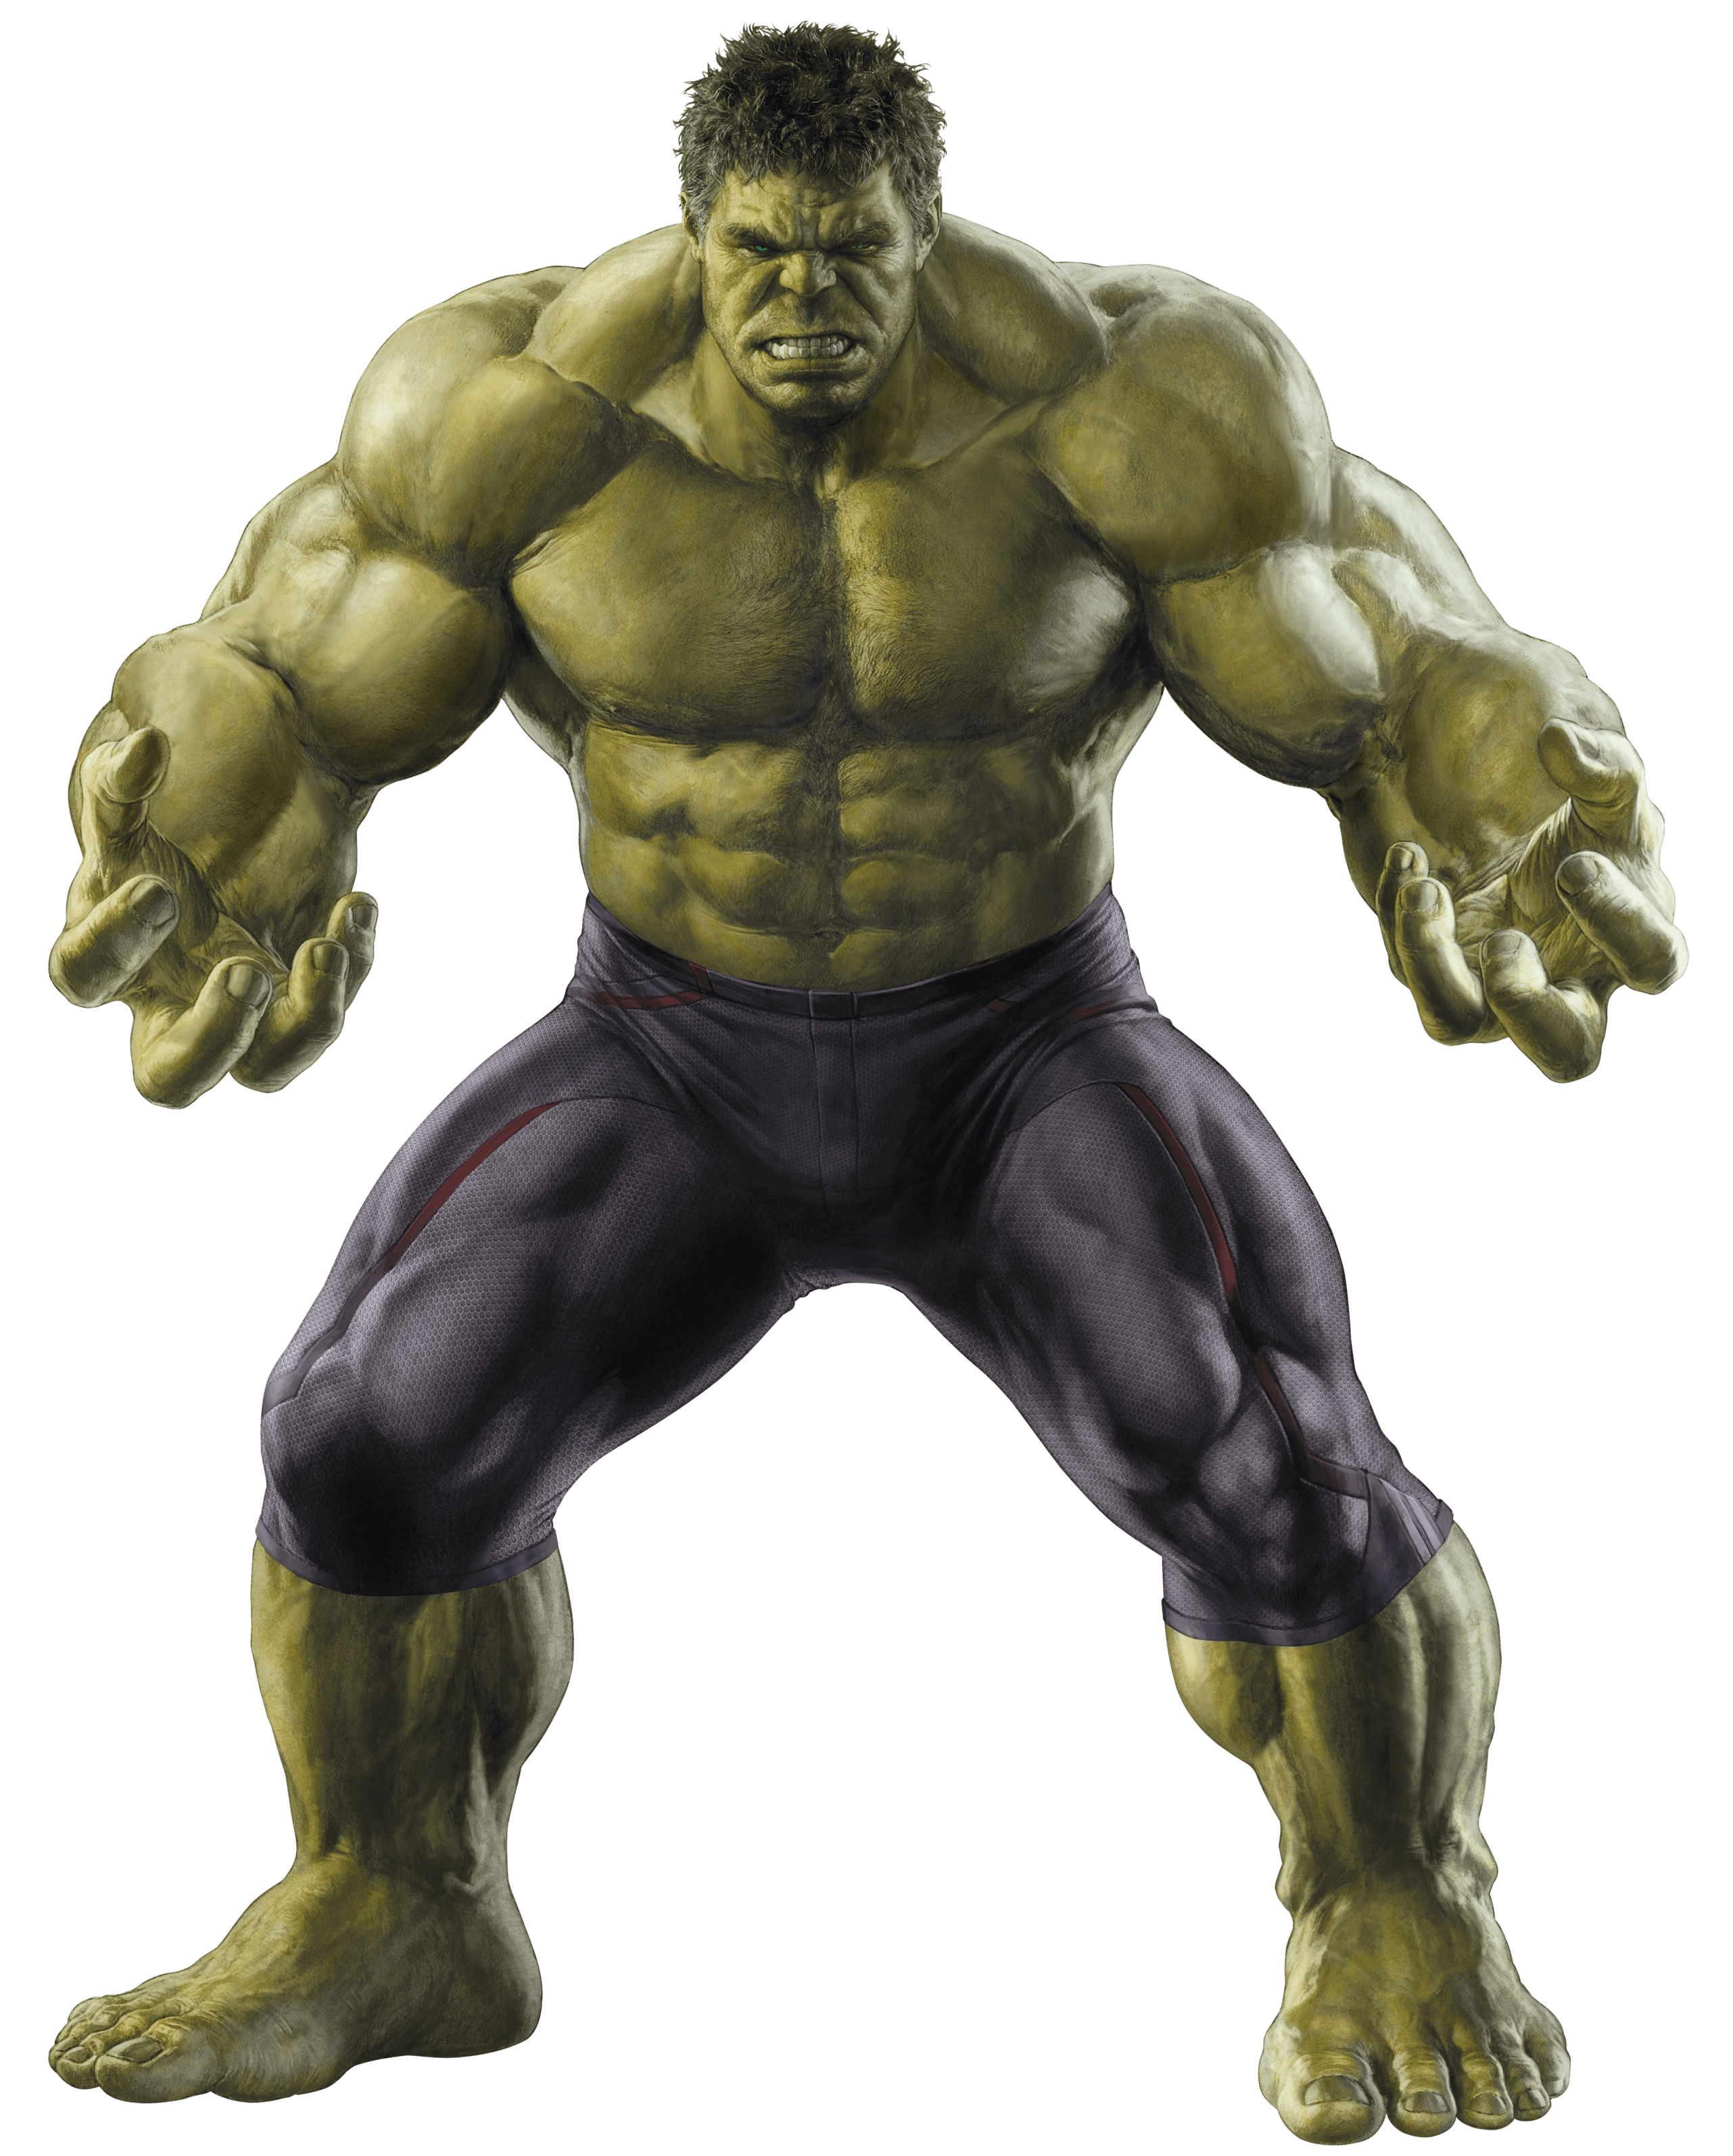 Hulk   Disney Wiki   FANDOM powered by Wikia Hulk